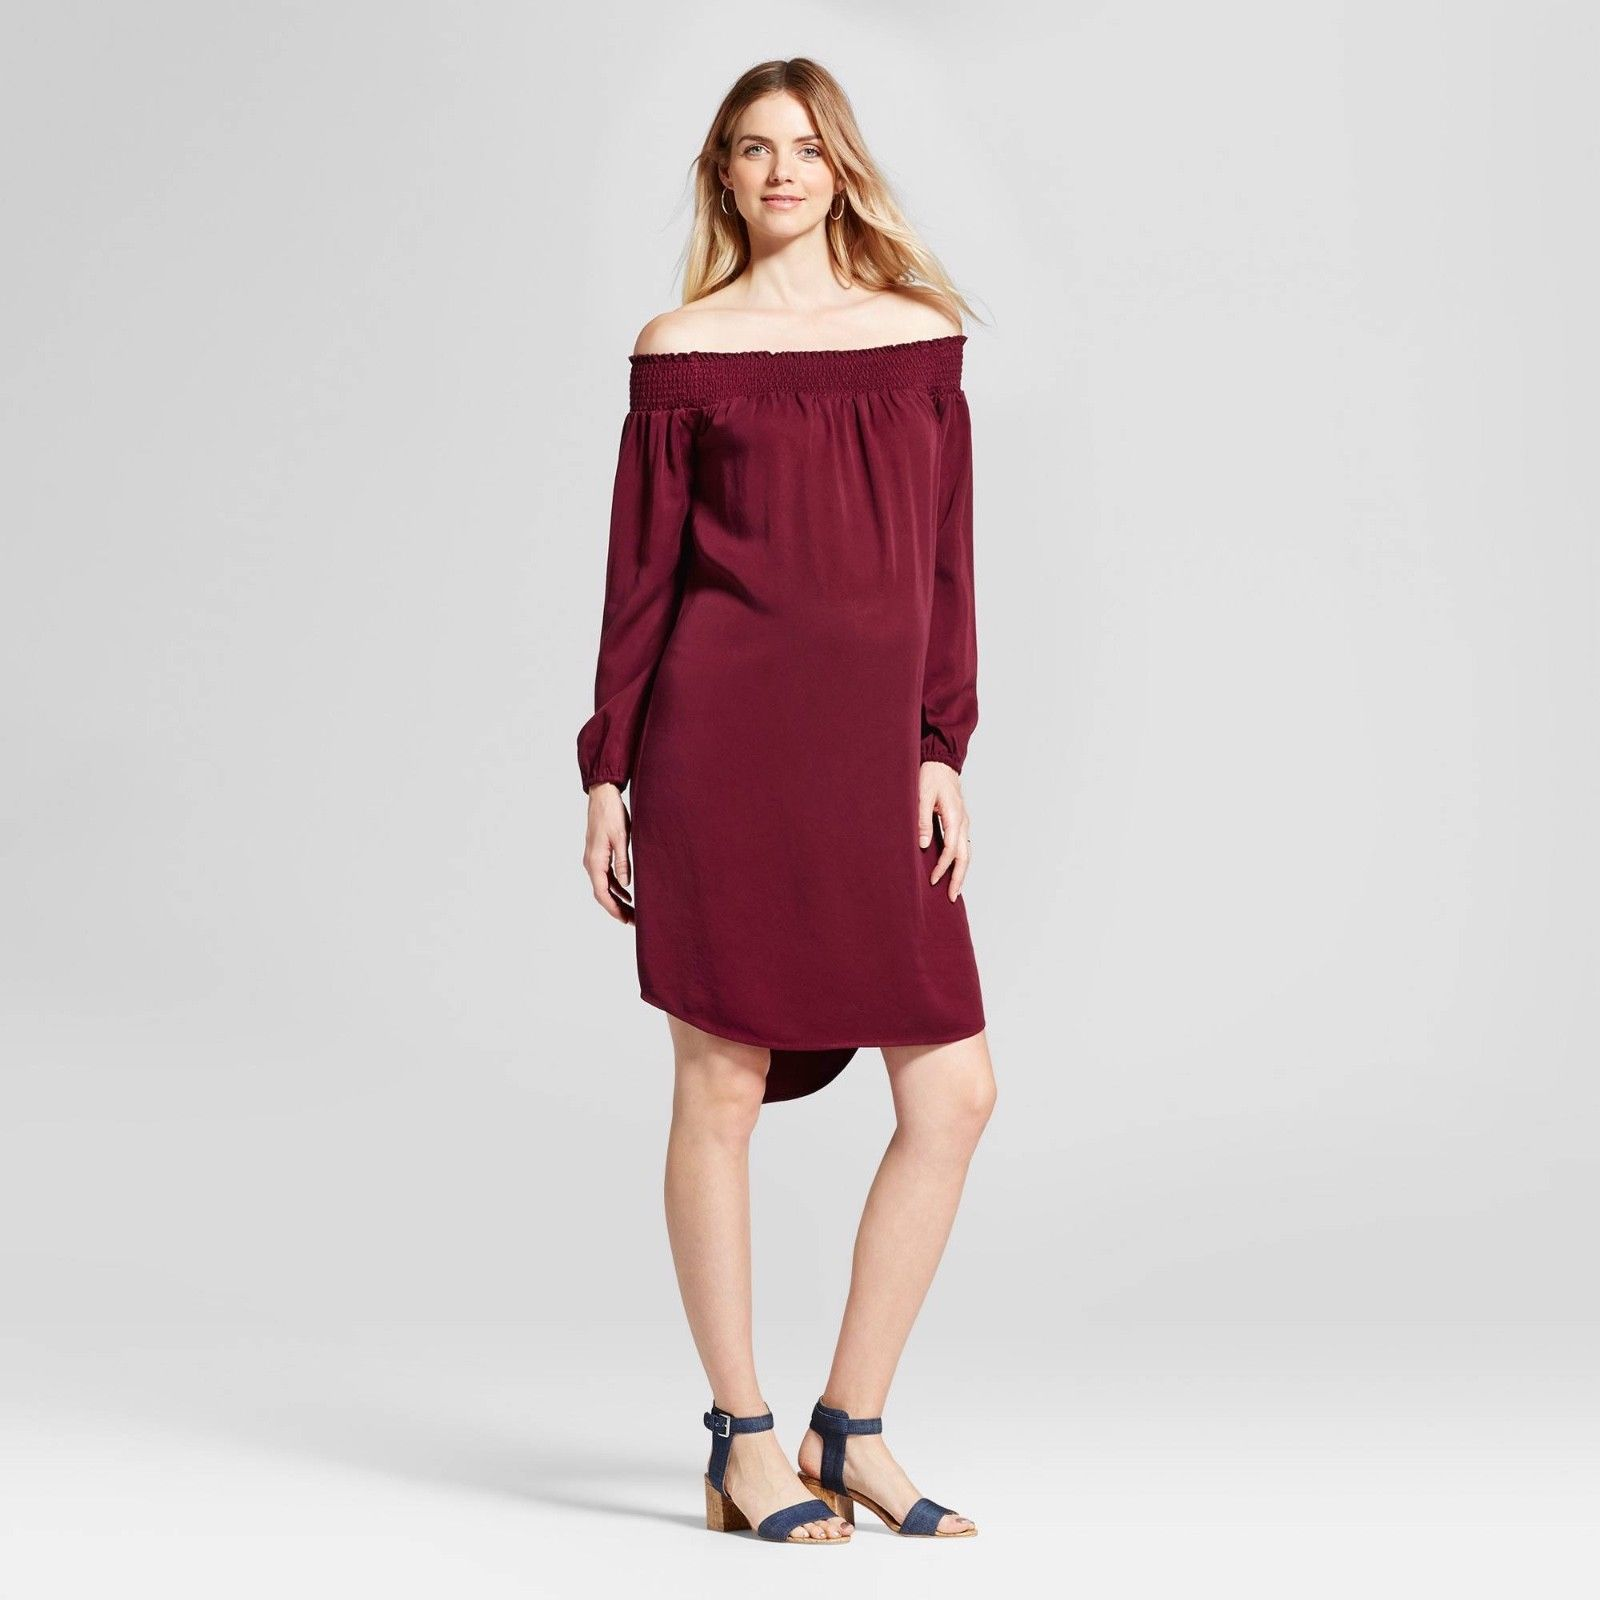 Isabel maternity off the shoulder long sleeve dress boysenberry isabel maternity off the shoulder long sleeve dress boysenberry red ombrellifo Image collections